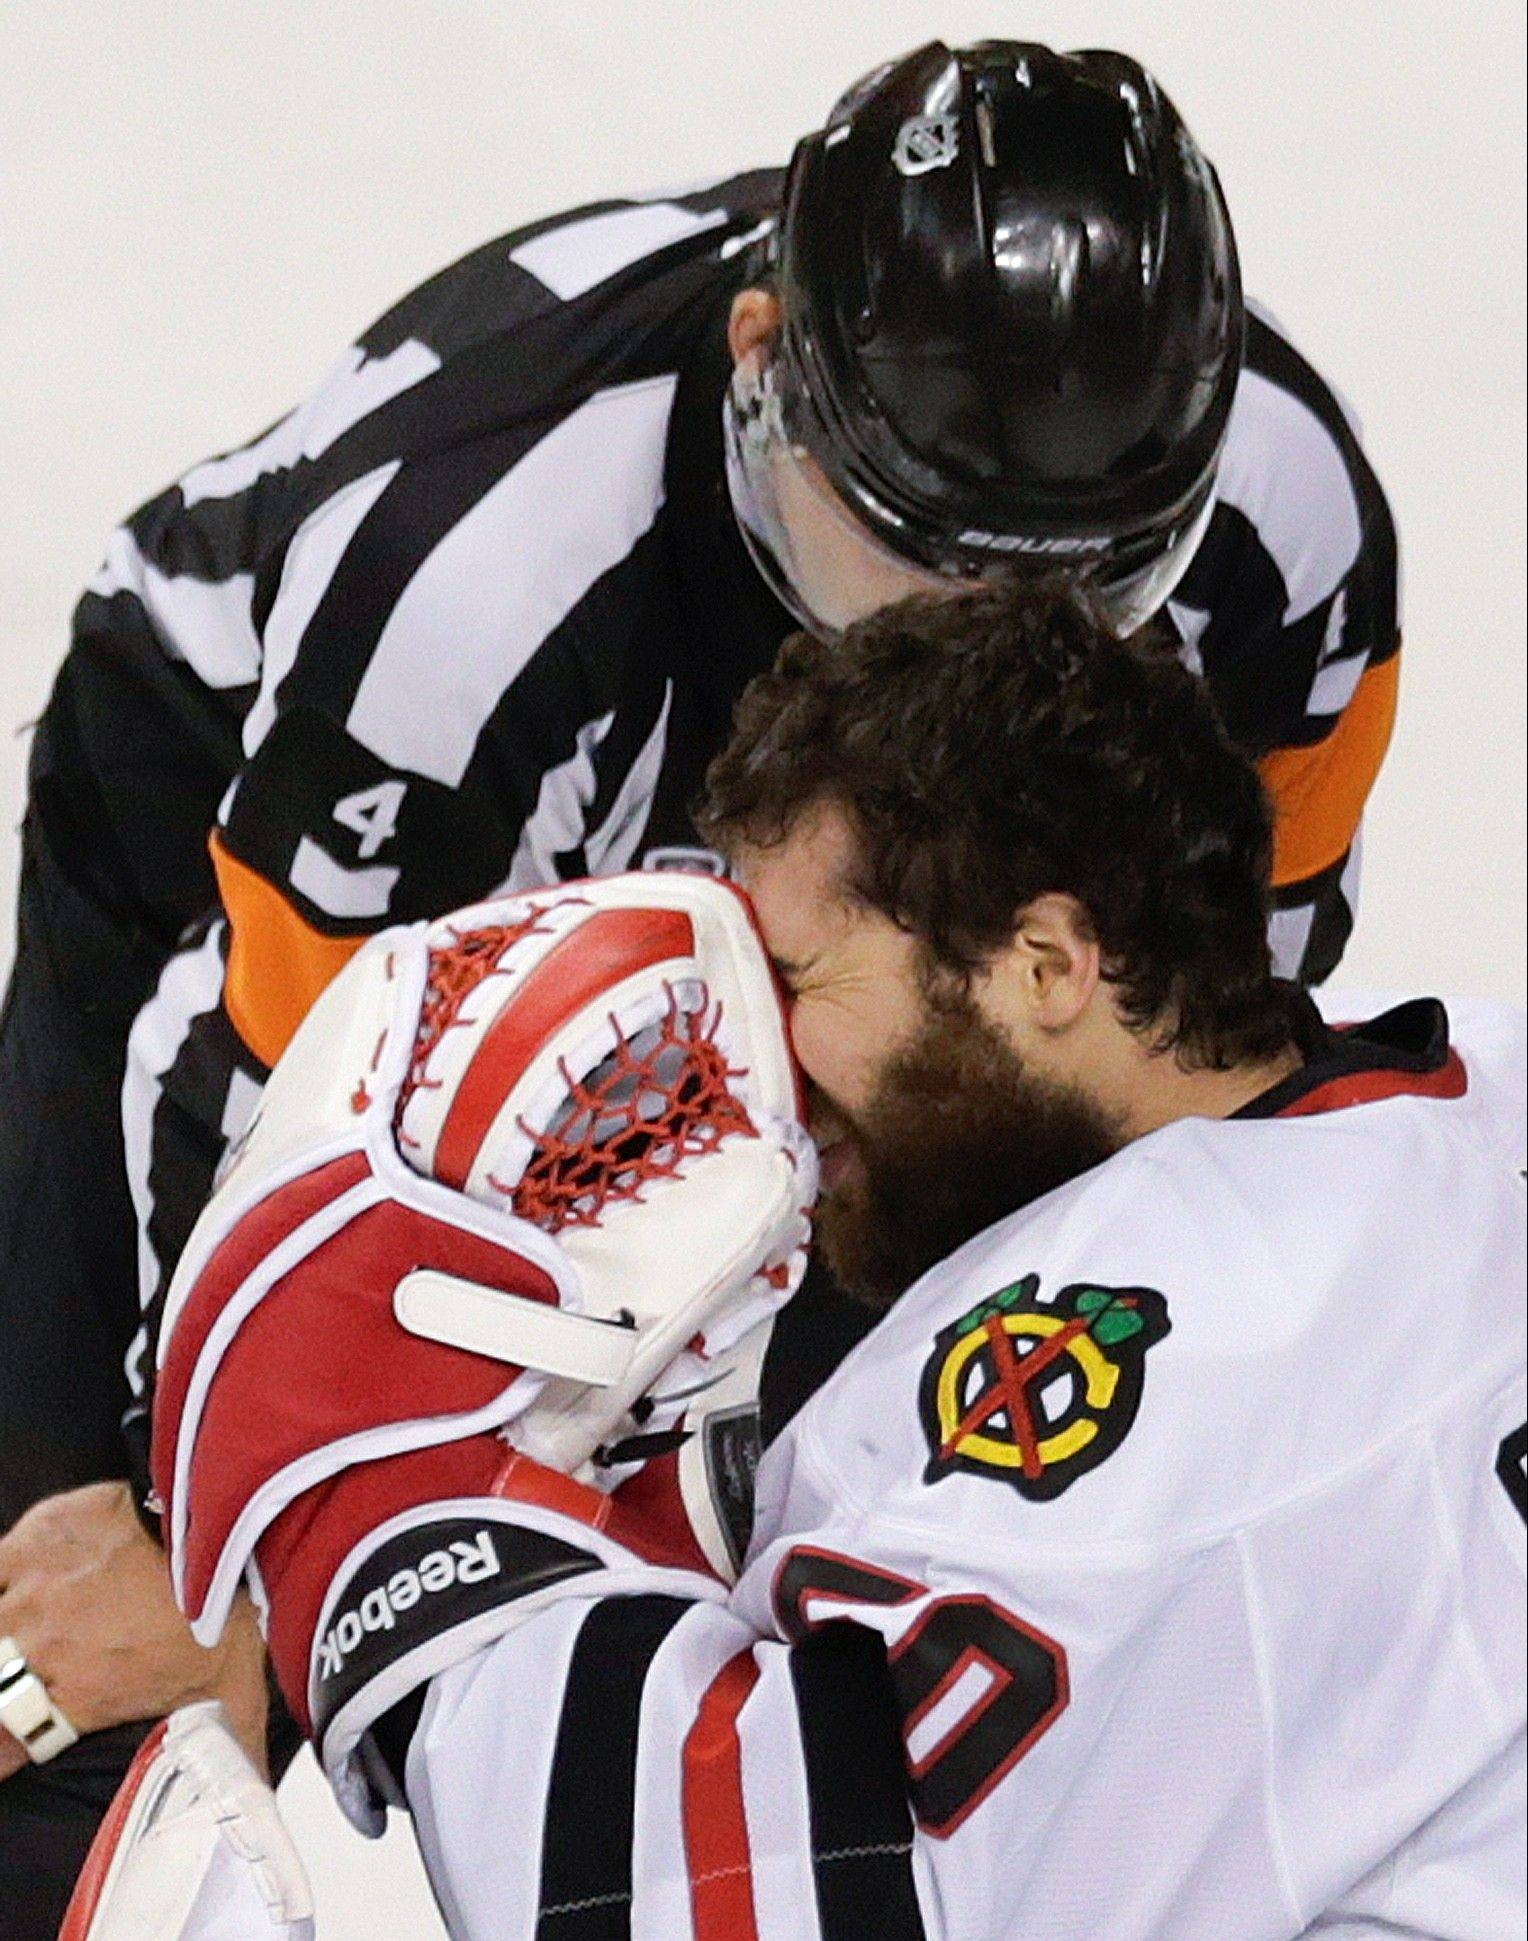 Referee Wes McCauley checks on Blackhawks goalie Corey Crawford during the first period in Game 6 on Monday.